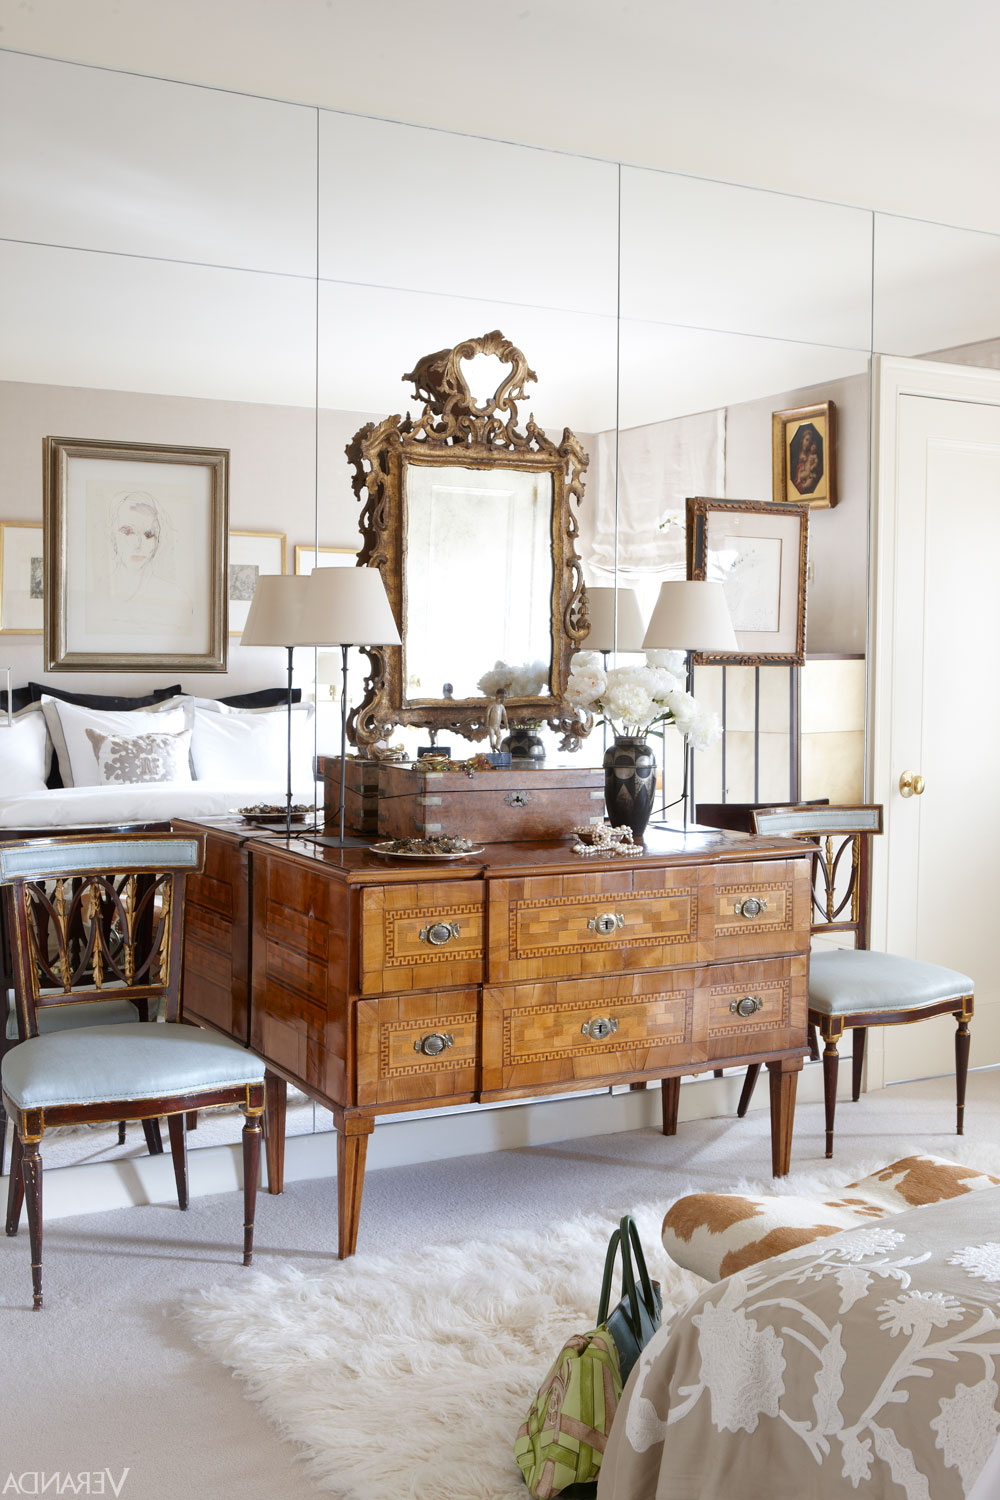 Plagued With Dated Mirrored Walls? 5 Design Ideas To Make In Most Current Wall Mirror Designs For Bedrooms (View 10 of 20)